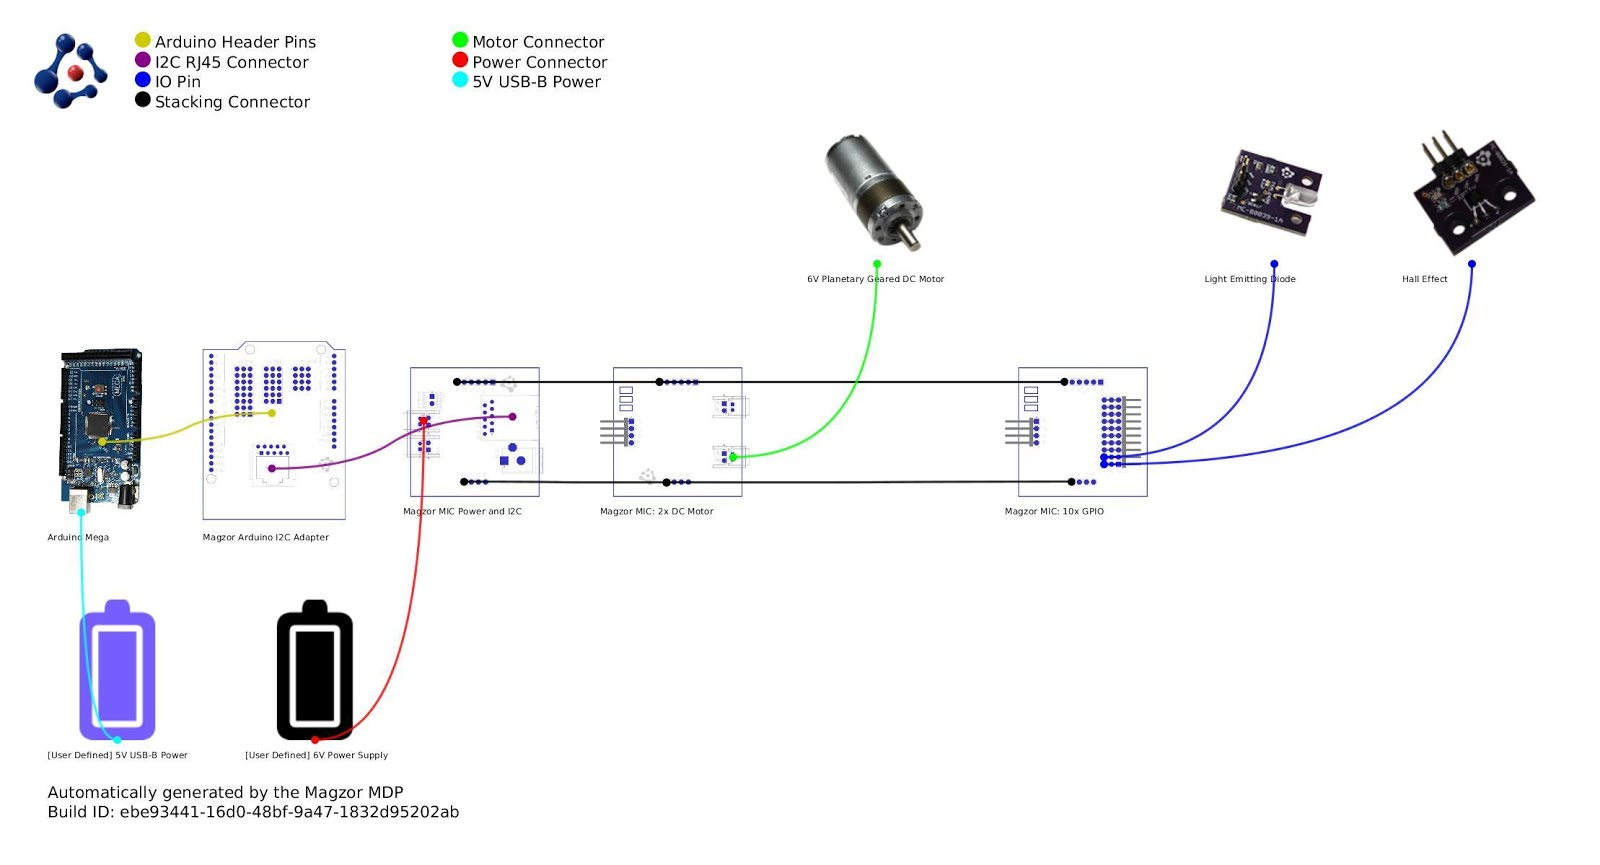 Posts With Project Label Usb Microphone Circuit Diagram Further Build Instructions Can Be Obtained By Selecting The Components In Mechanotronics Design Portal Within Magzor Website